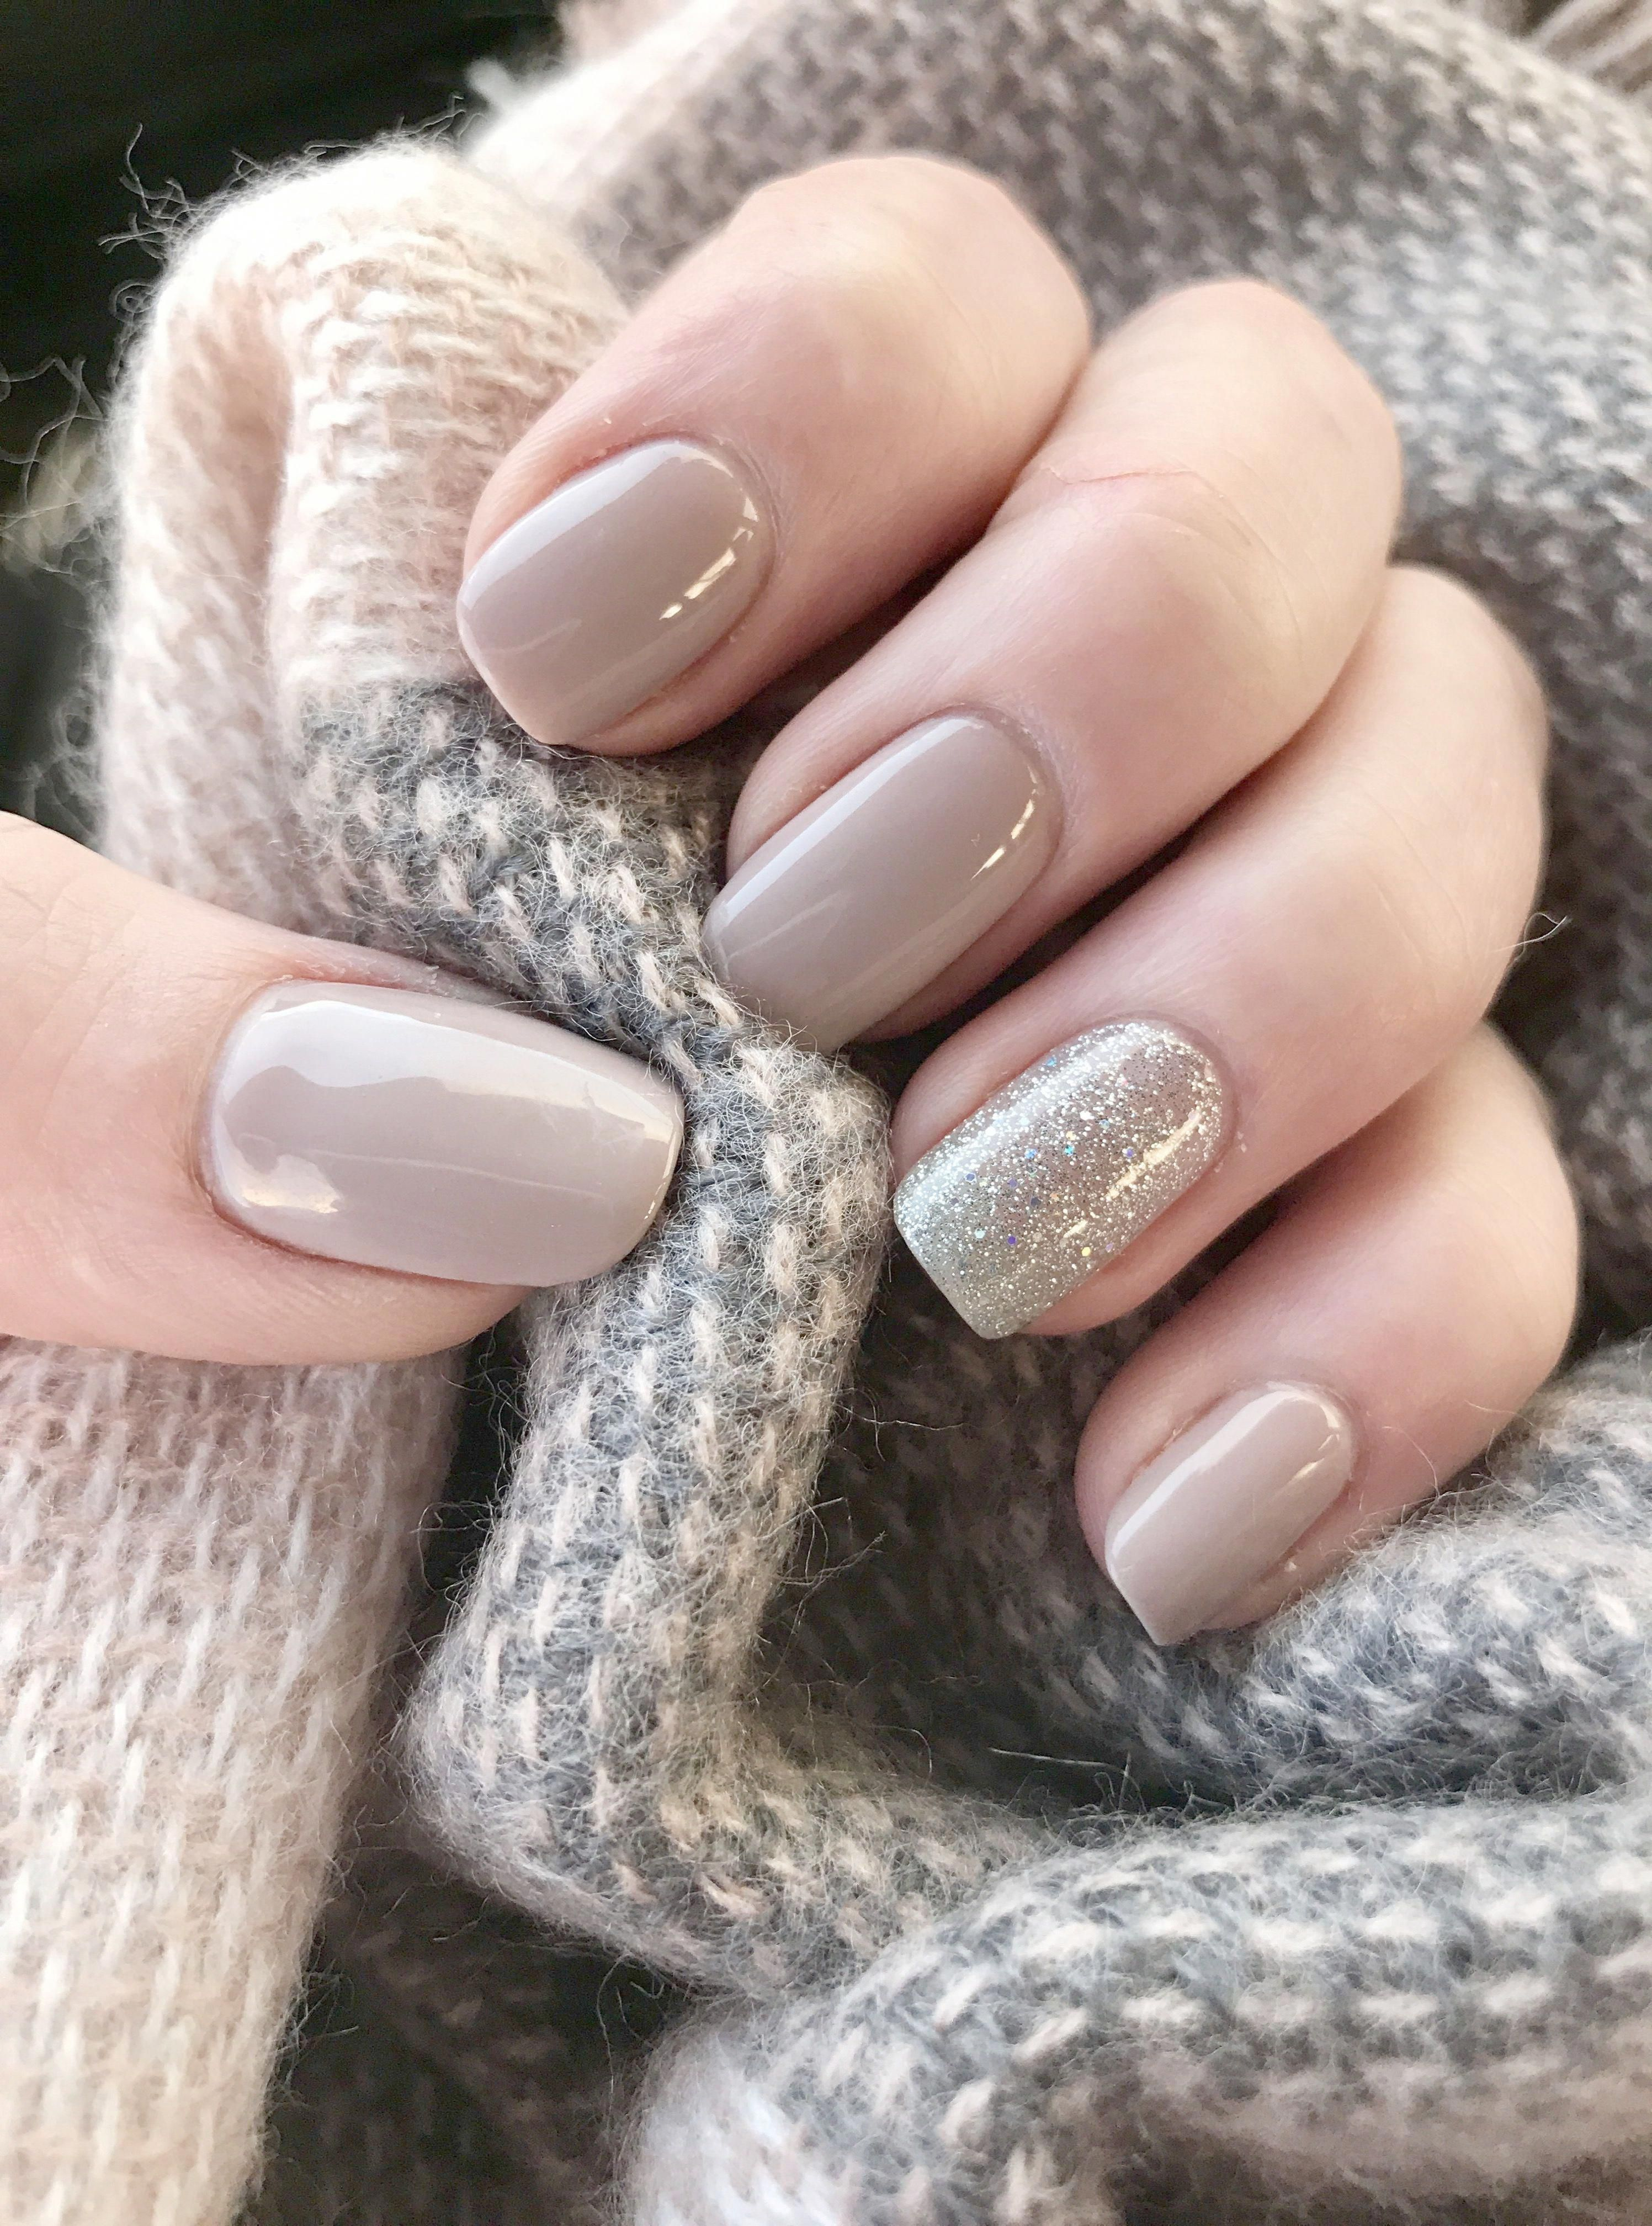 Missha Self Nail Salon Care Look Capsule Essence Rather Nail Care Salon Near Me To Best Neutral Color For Nails Wit In 2020 Neutral Nails Short Acrylic Nails Self Nail